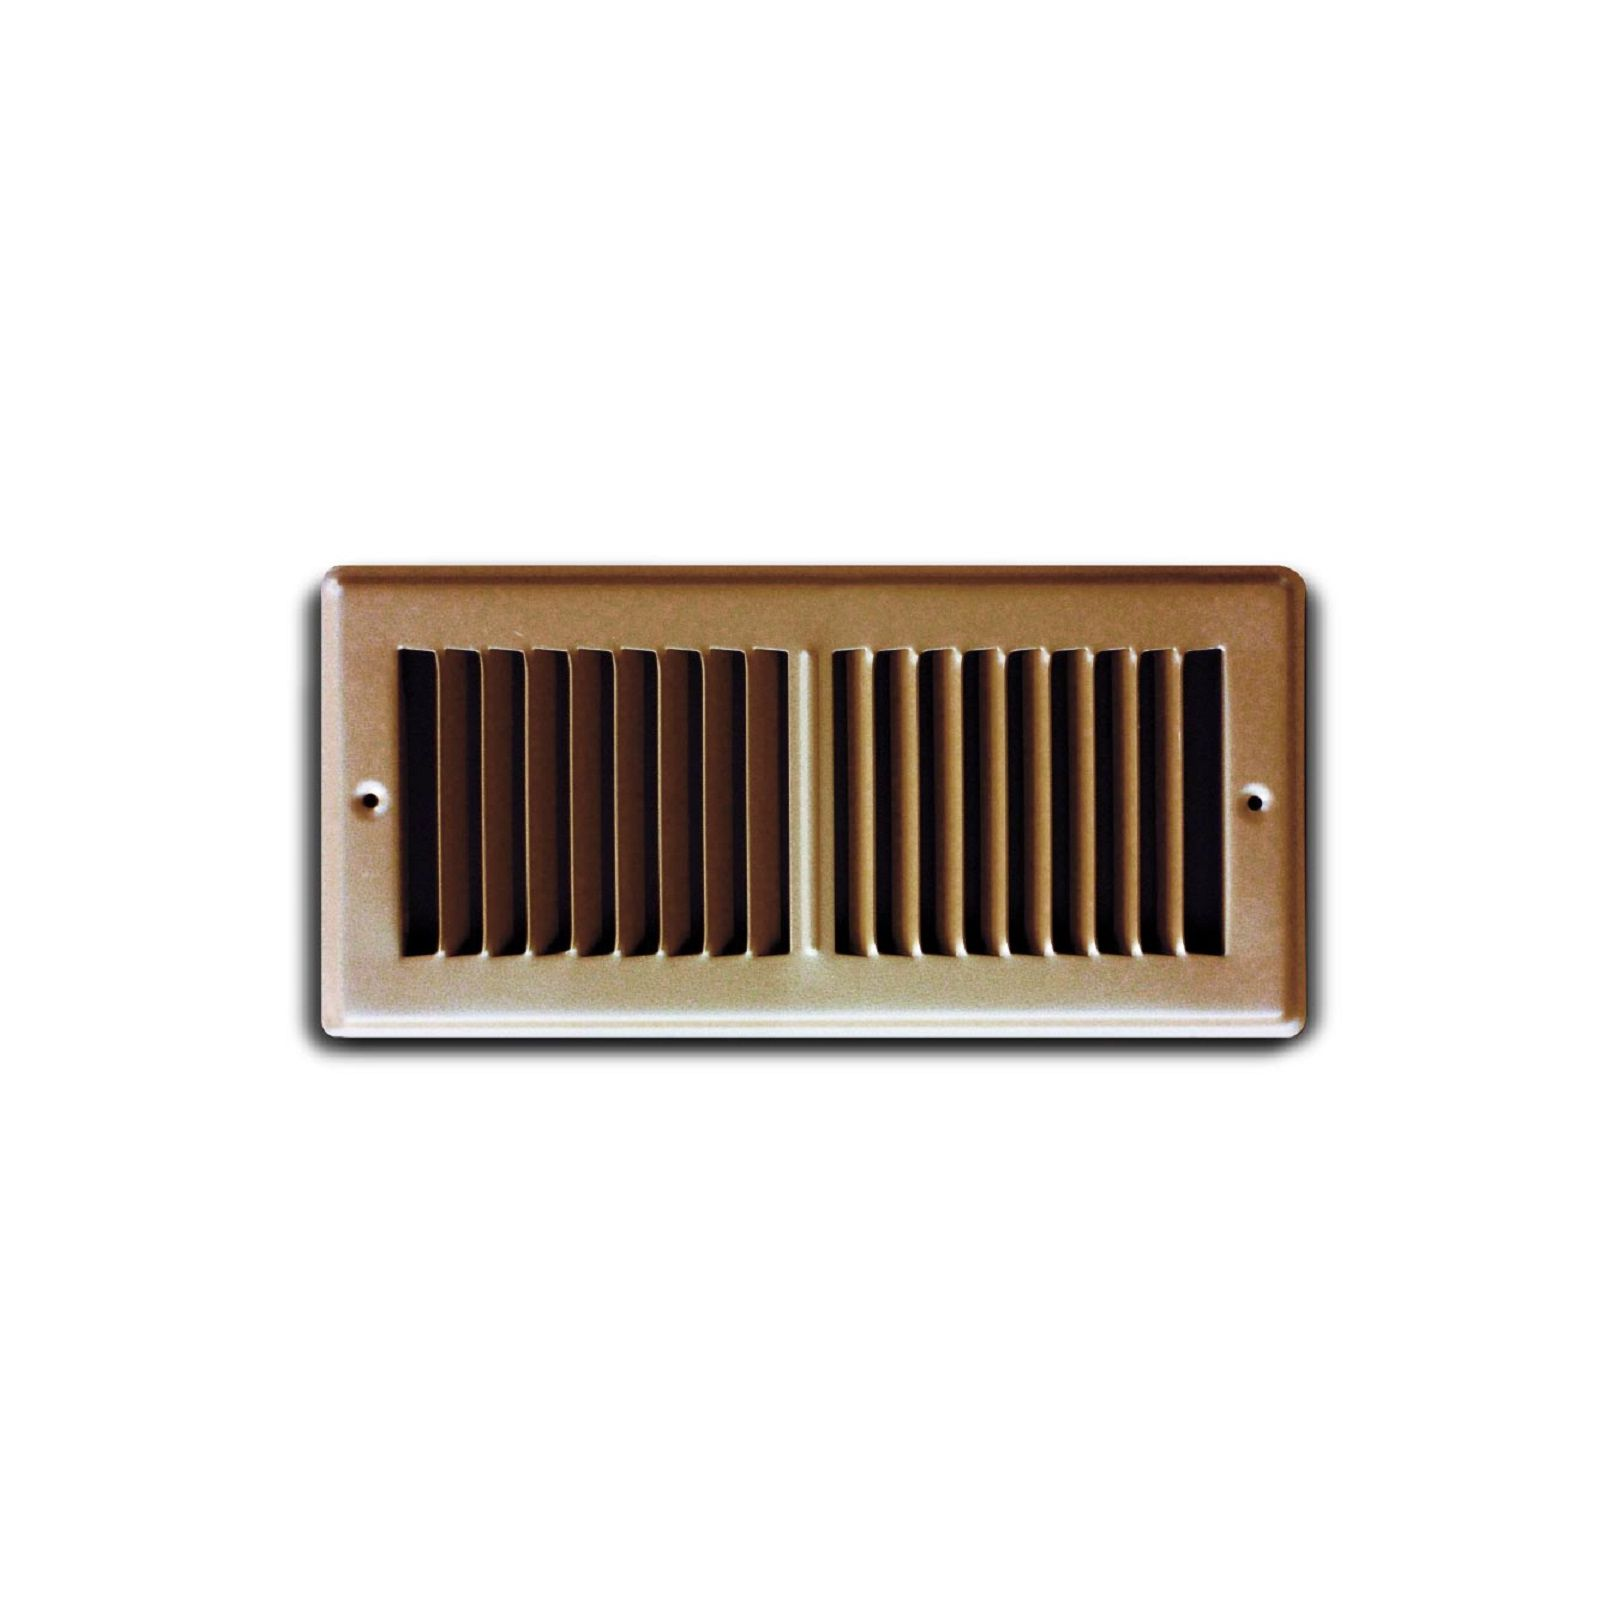 "TRUaire 150TSB 02X10 - Steel Stamped Toe Space Floor Grille, Brown, 02"" X 10"""